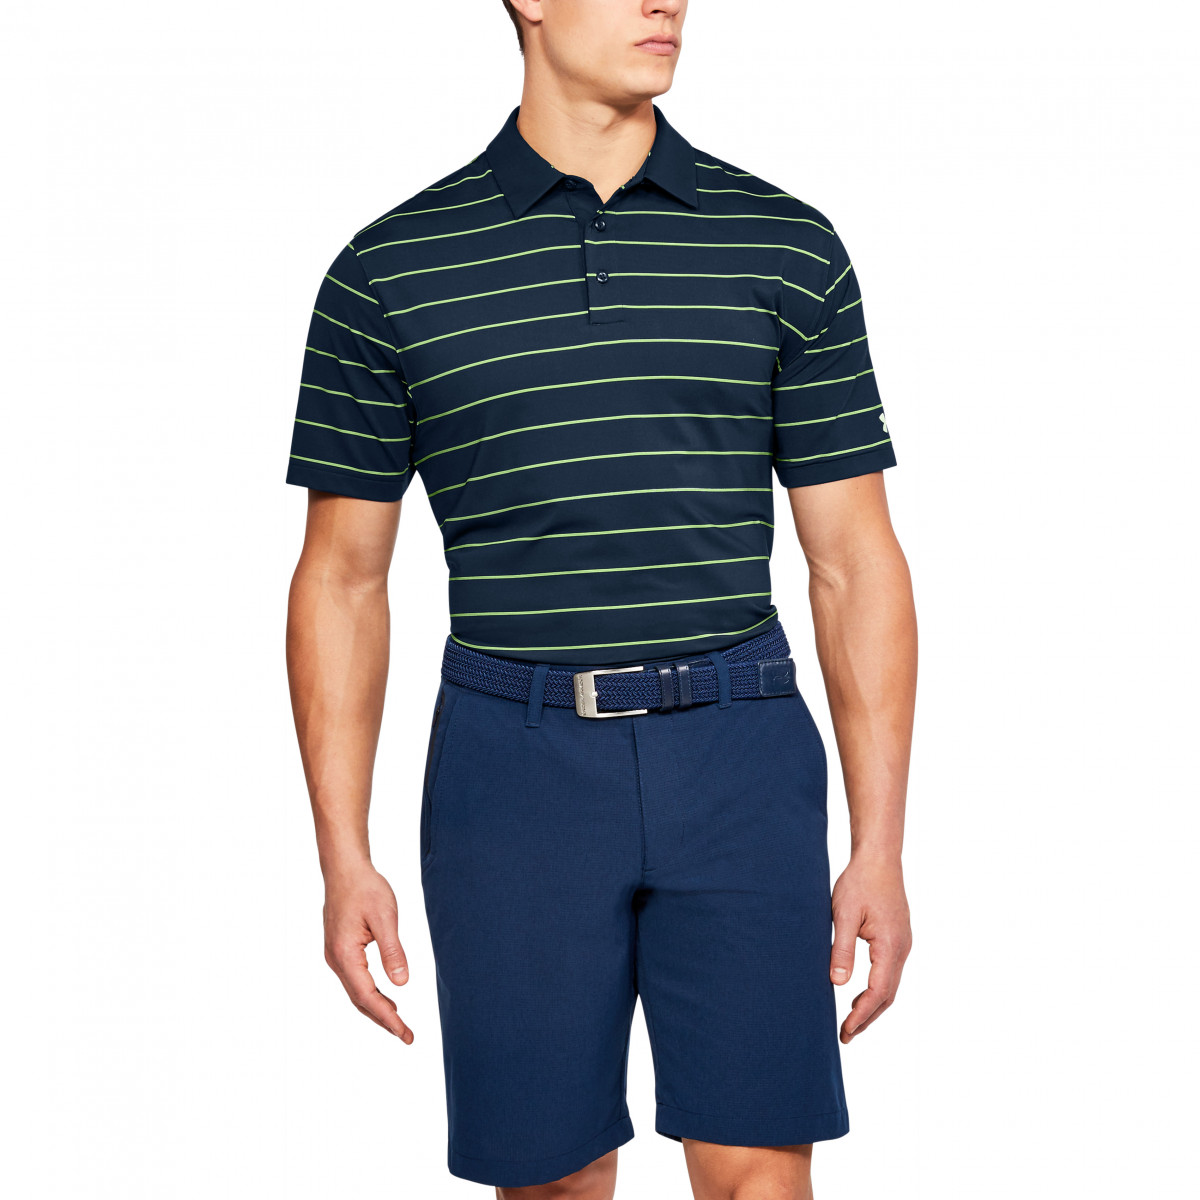 9c5921ba Under Armour Mens Crestable Playoff Golf Polo Shirt